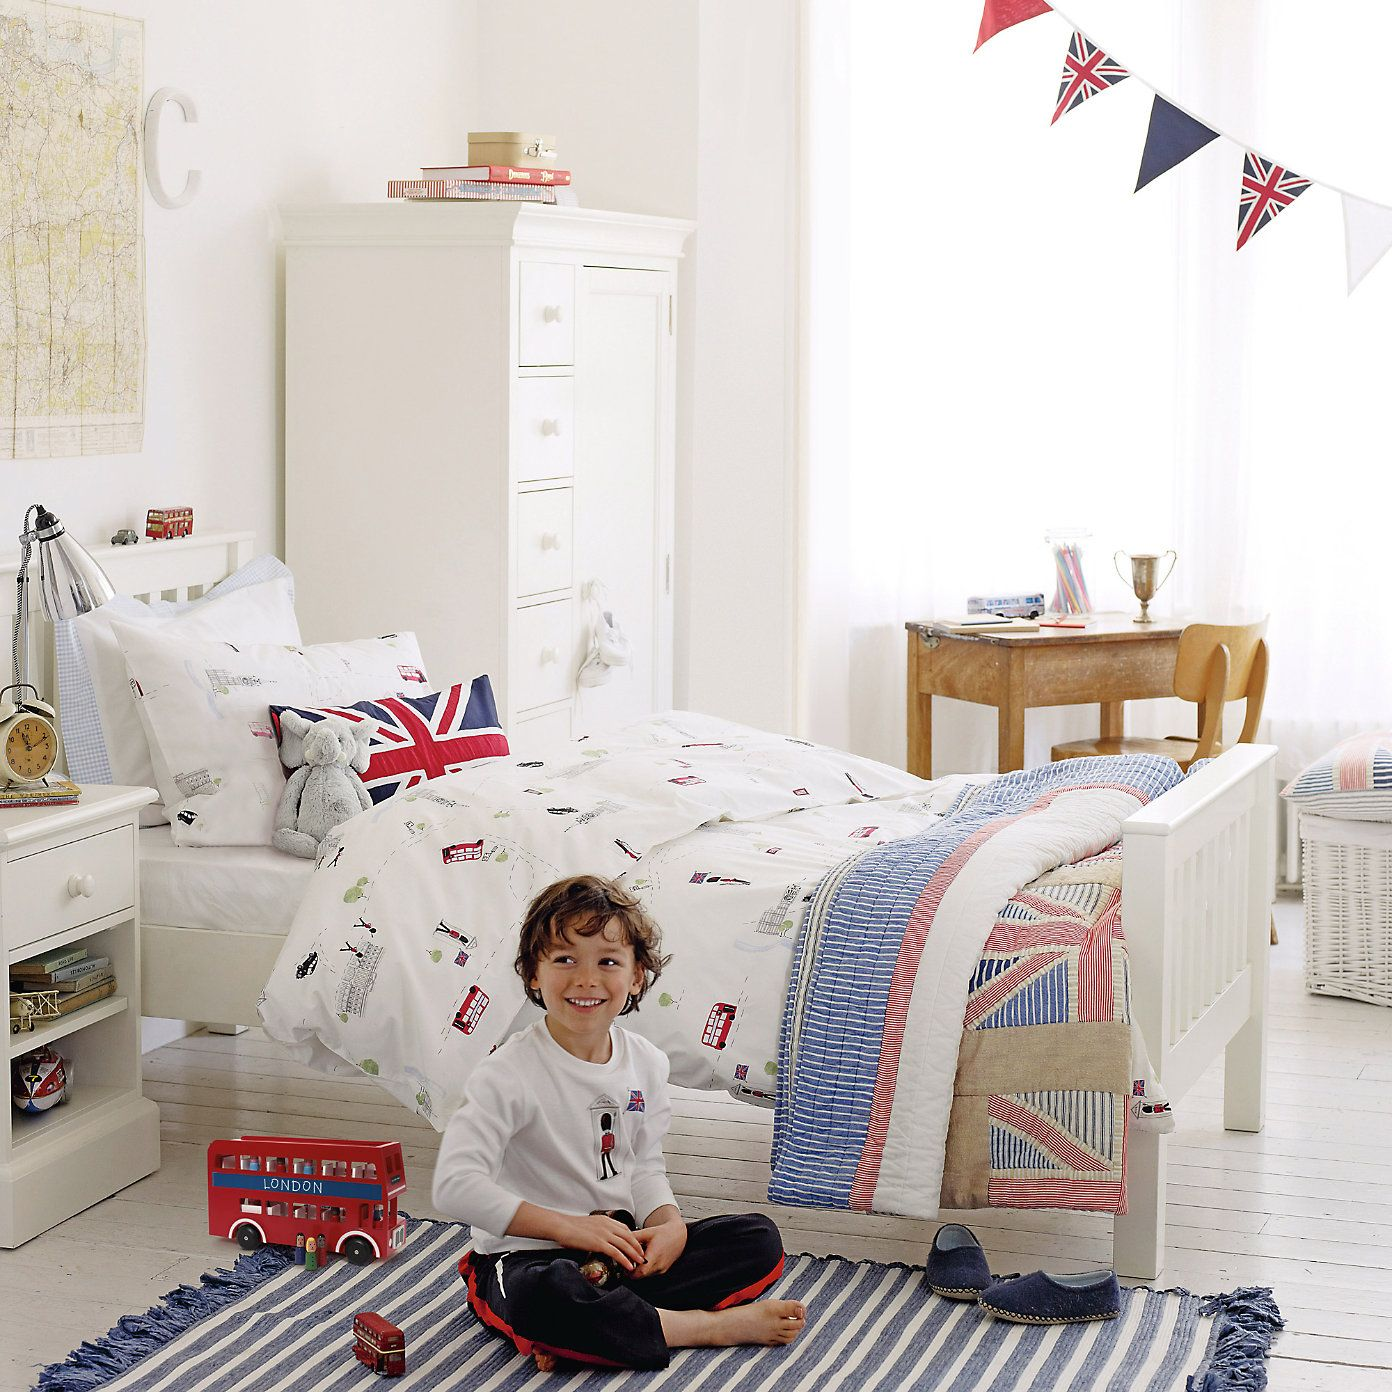 Buy Clearance > The Little White Company > Little London